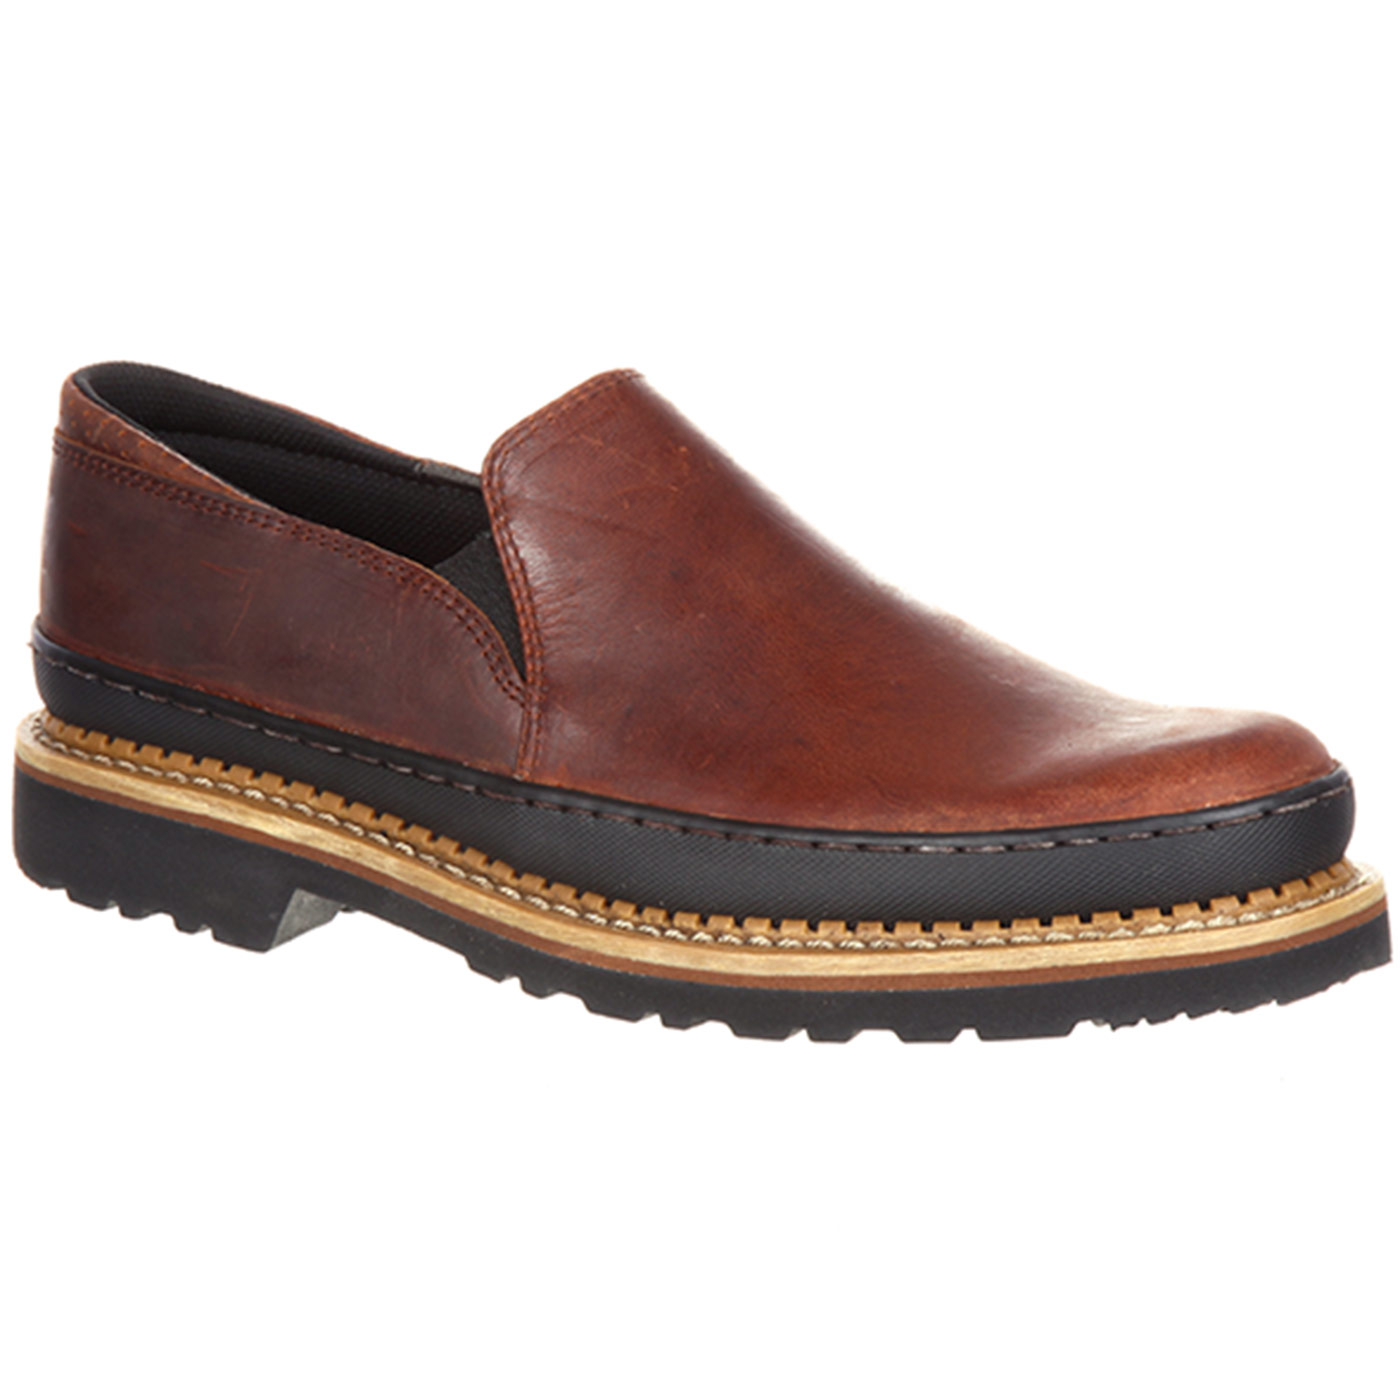 Mens Work Boots Georgia Boot Cut Engineer Shoes Safety Iron Suede Leather Soft Brown Giant Twin Gore Shoe